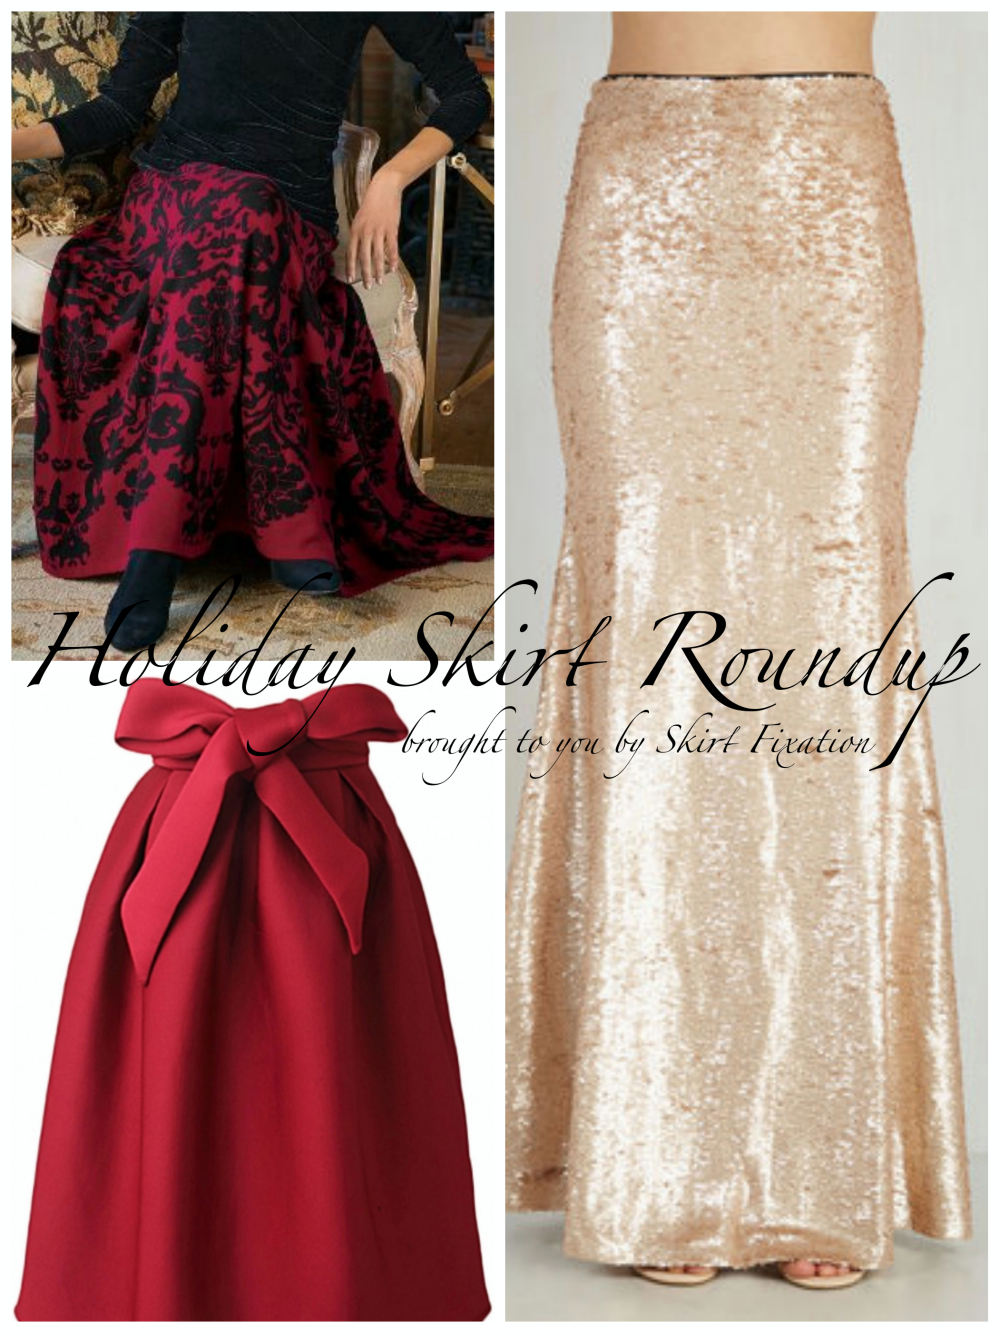 Holiday Skirt Roundup brought to you by Skirt Fixation